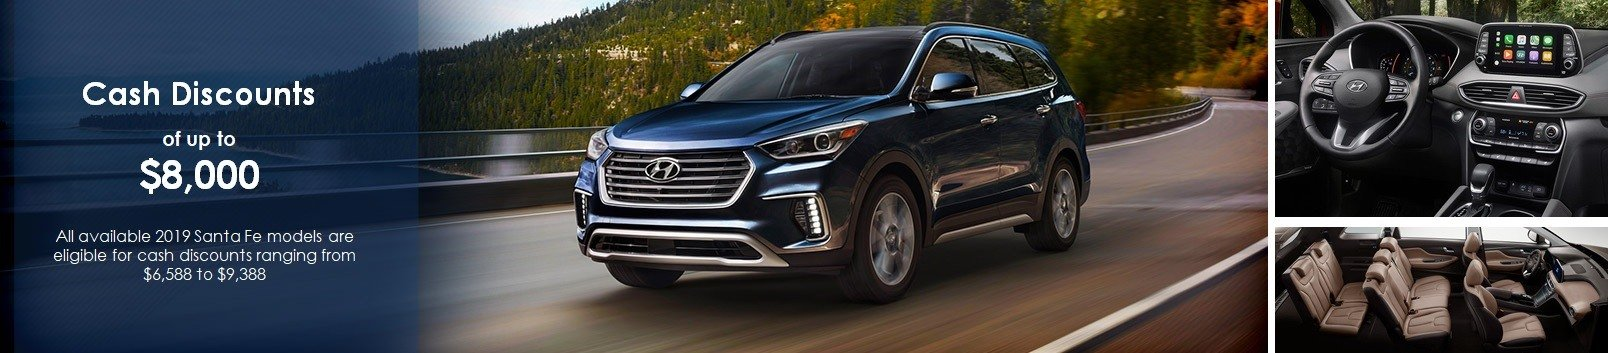 2019 Hyundai Santa Fe Special Discount Offer in GTA (both new and used 2019 santa fe inventory available)